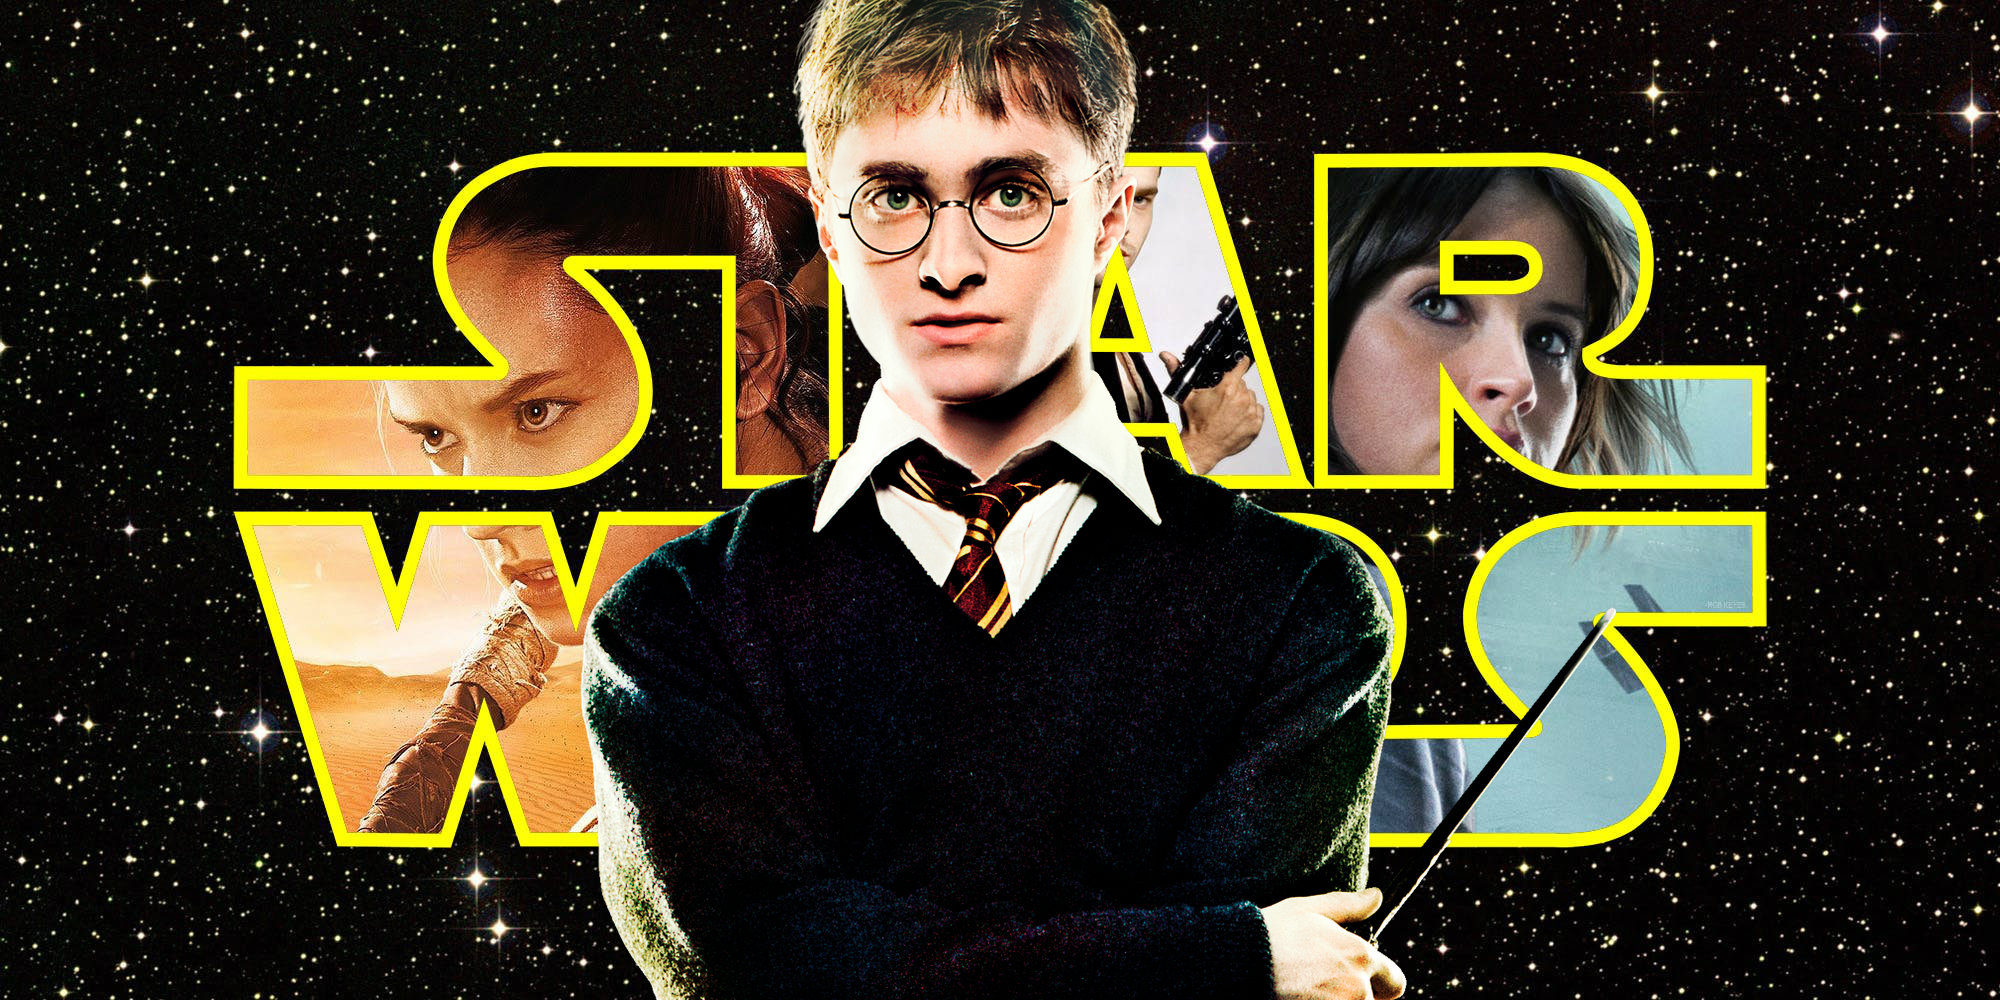 Star Wars Franchise Passes Harry Potter At Worldwide Box fice